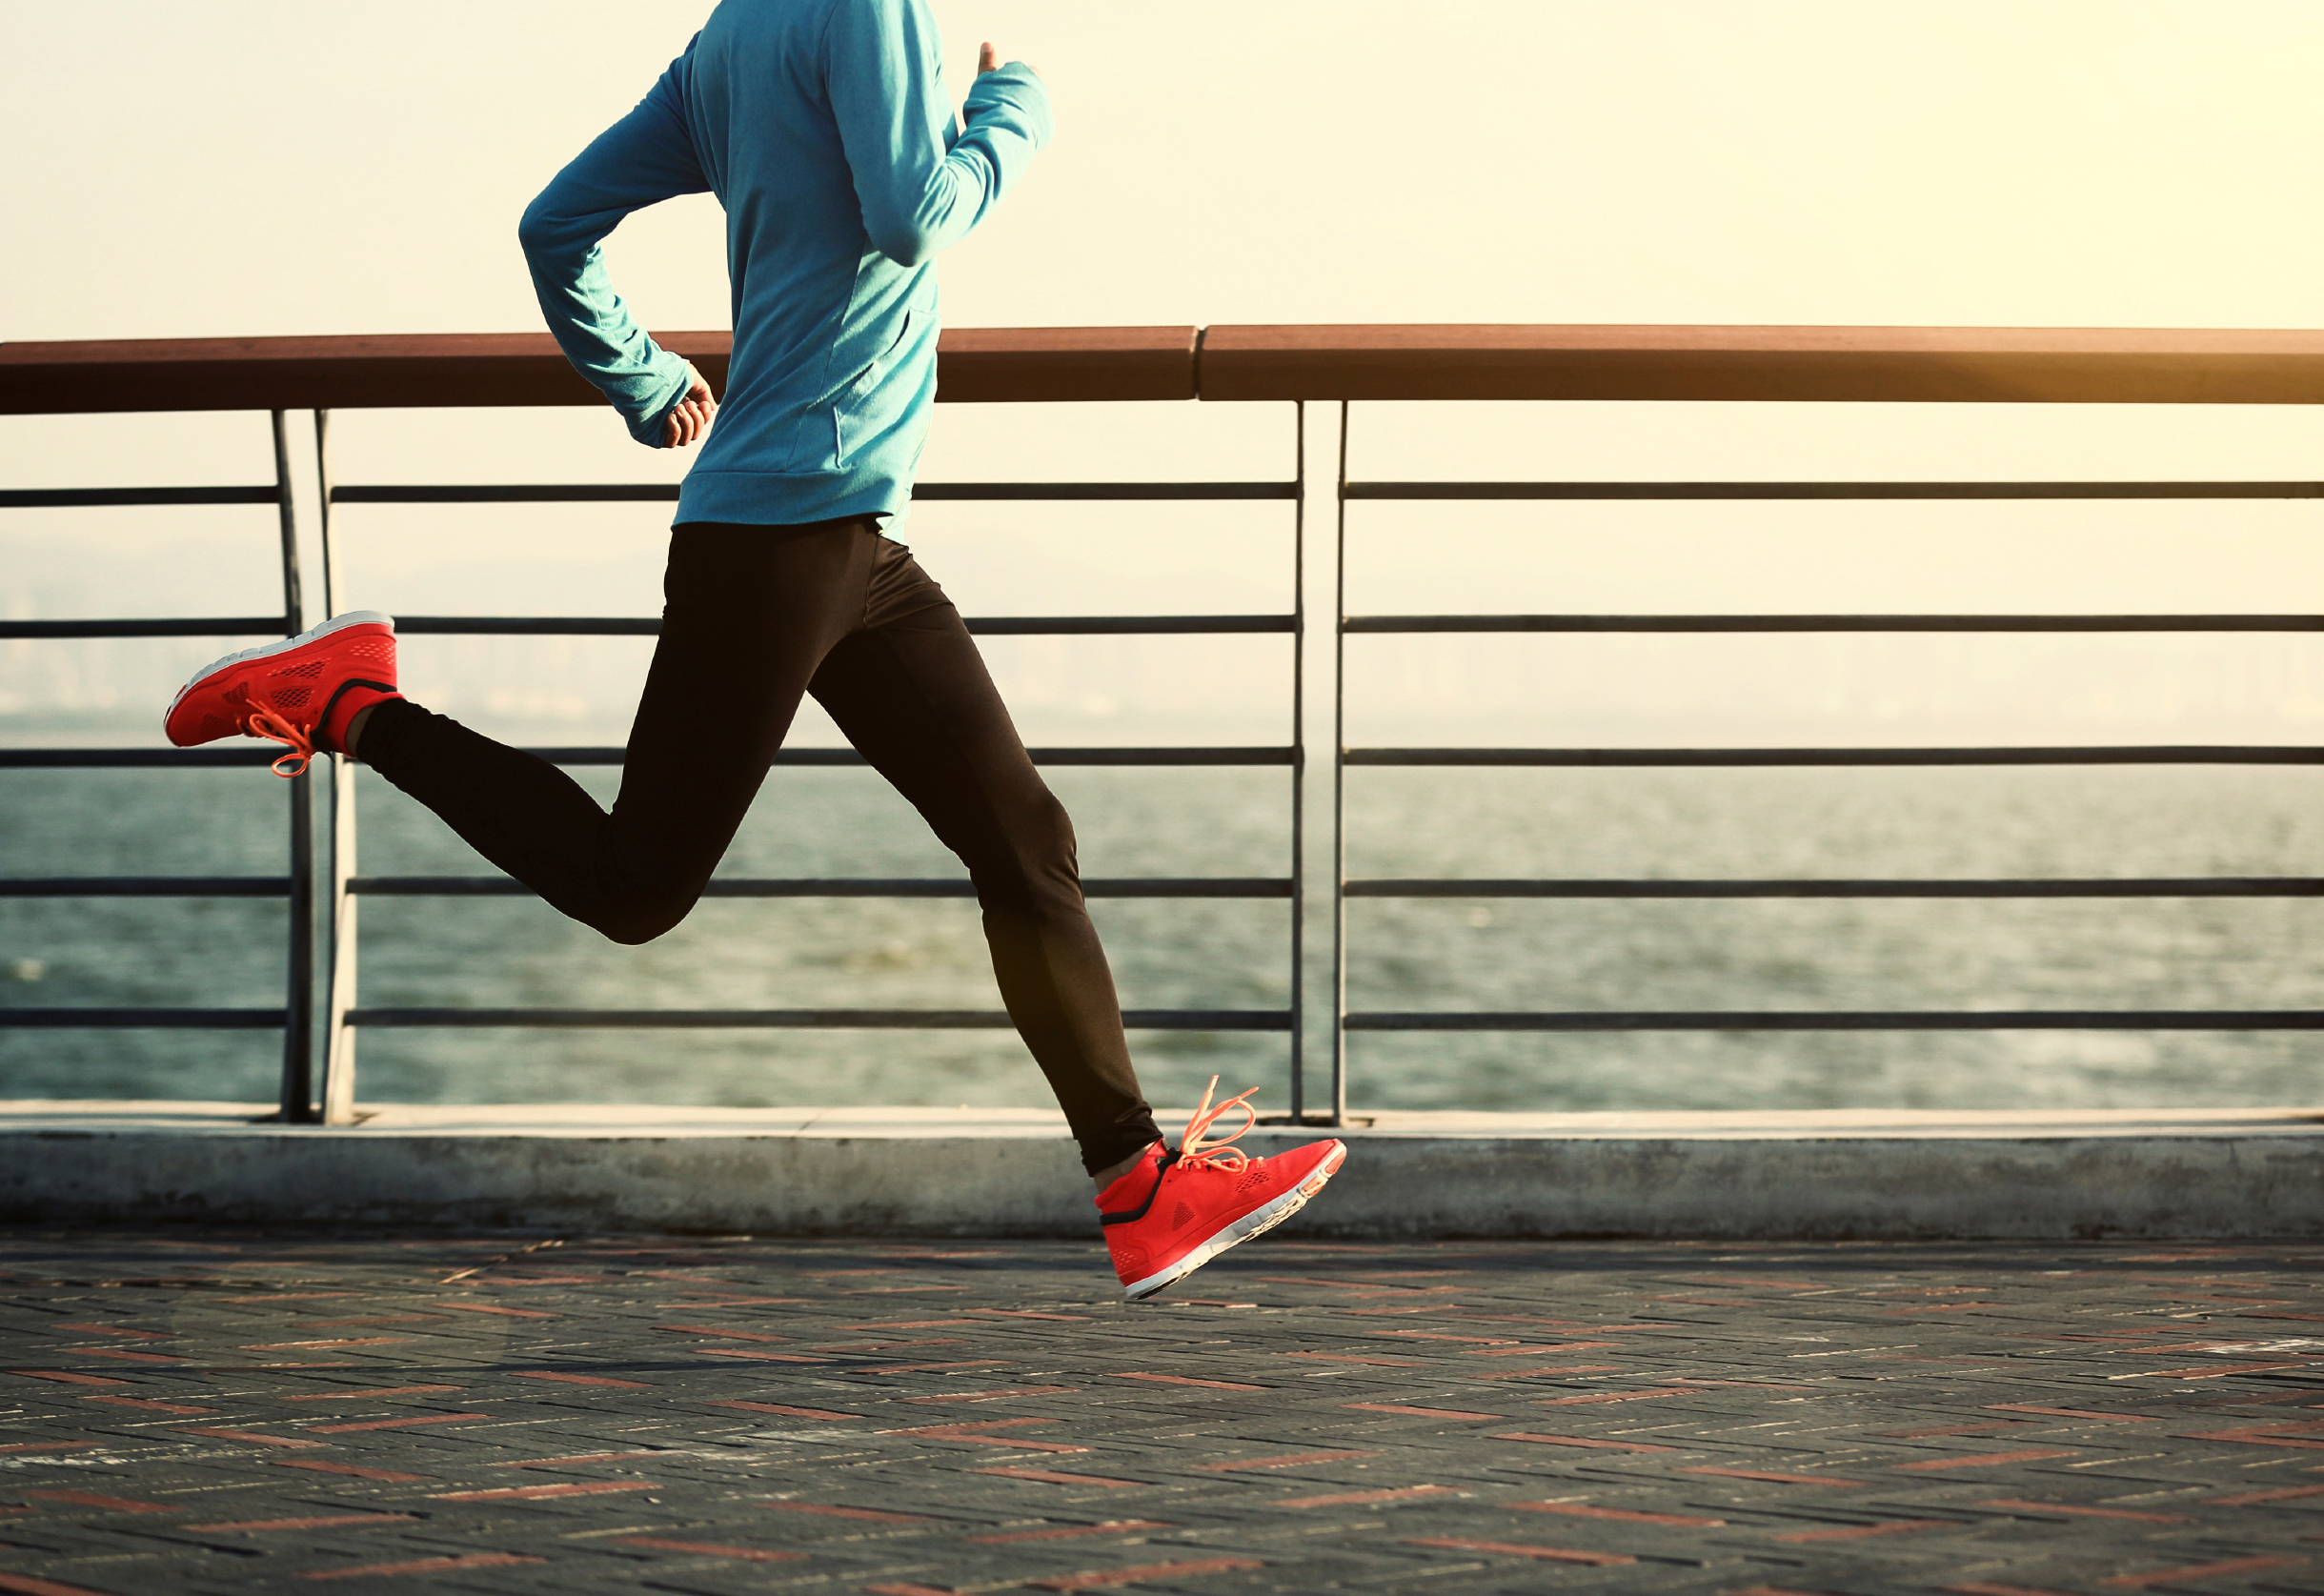 New info on running could keep you training injury-free!